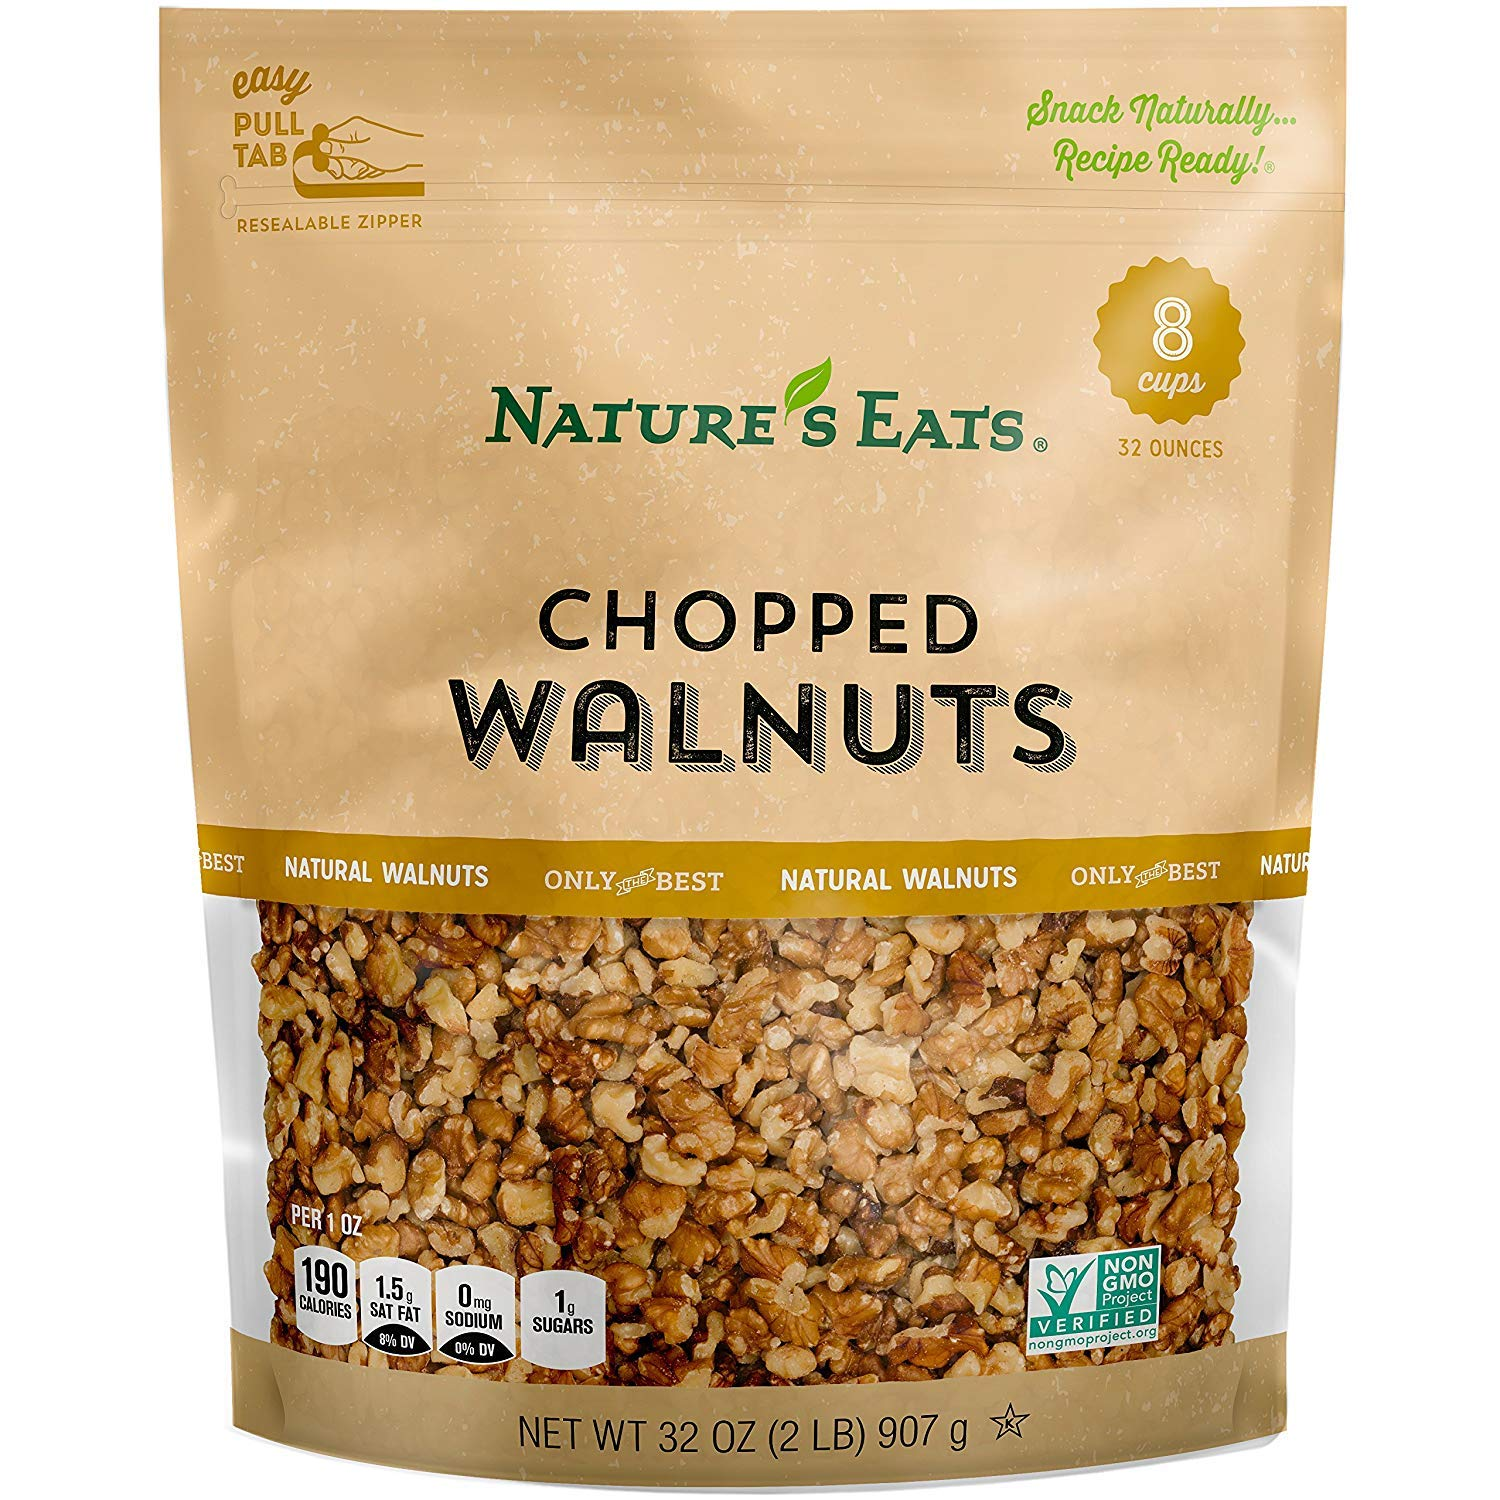 Nature's Eats Chopped Walnuts, 32 Ounce (2 Pack) by Nature's Eats